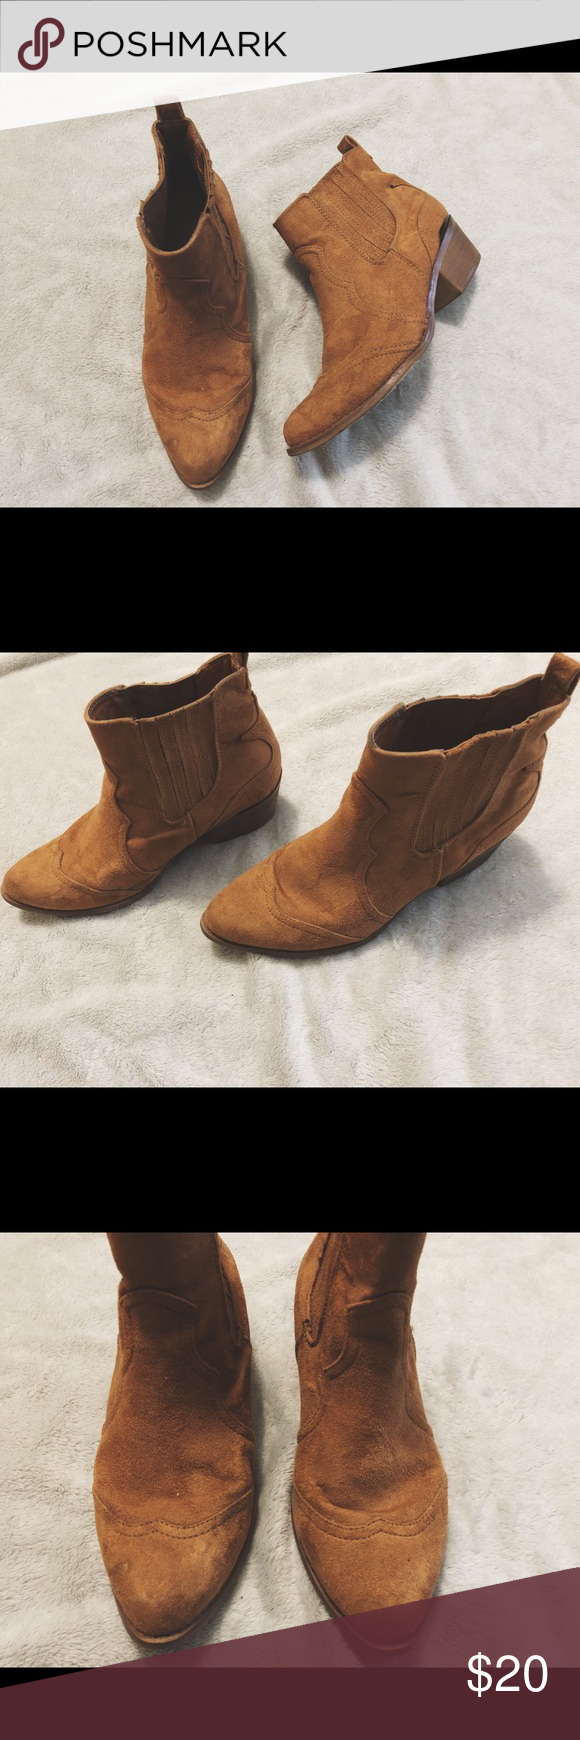 Faux suede ankle boots Super comfortable and cute, faux suede ankle boots. Look so cute paired with skinny jeans or a cute wrap dress! Merona Shoes Ankle Boots & Booties #skinnyjeansandankleboots